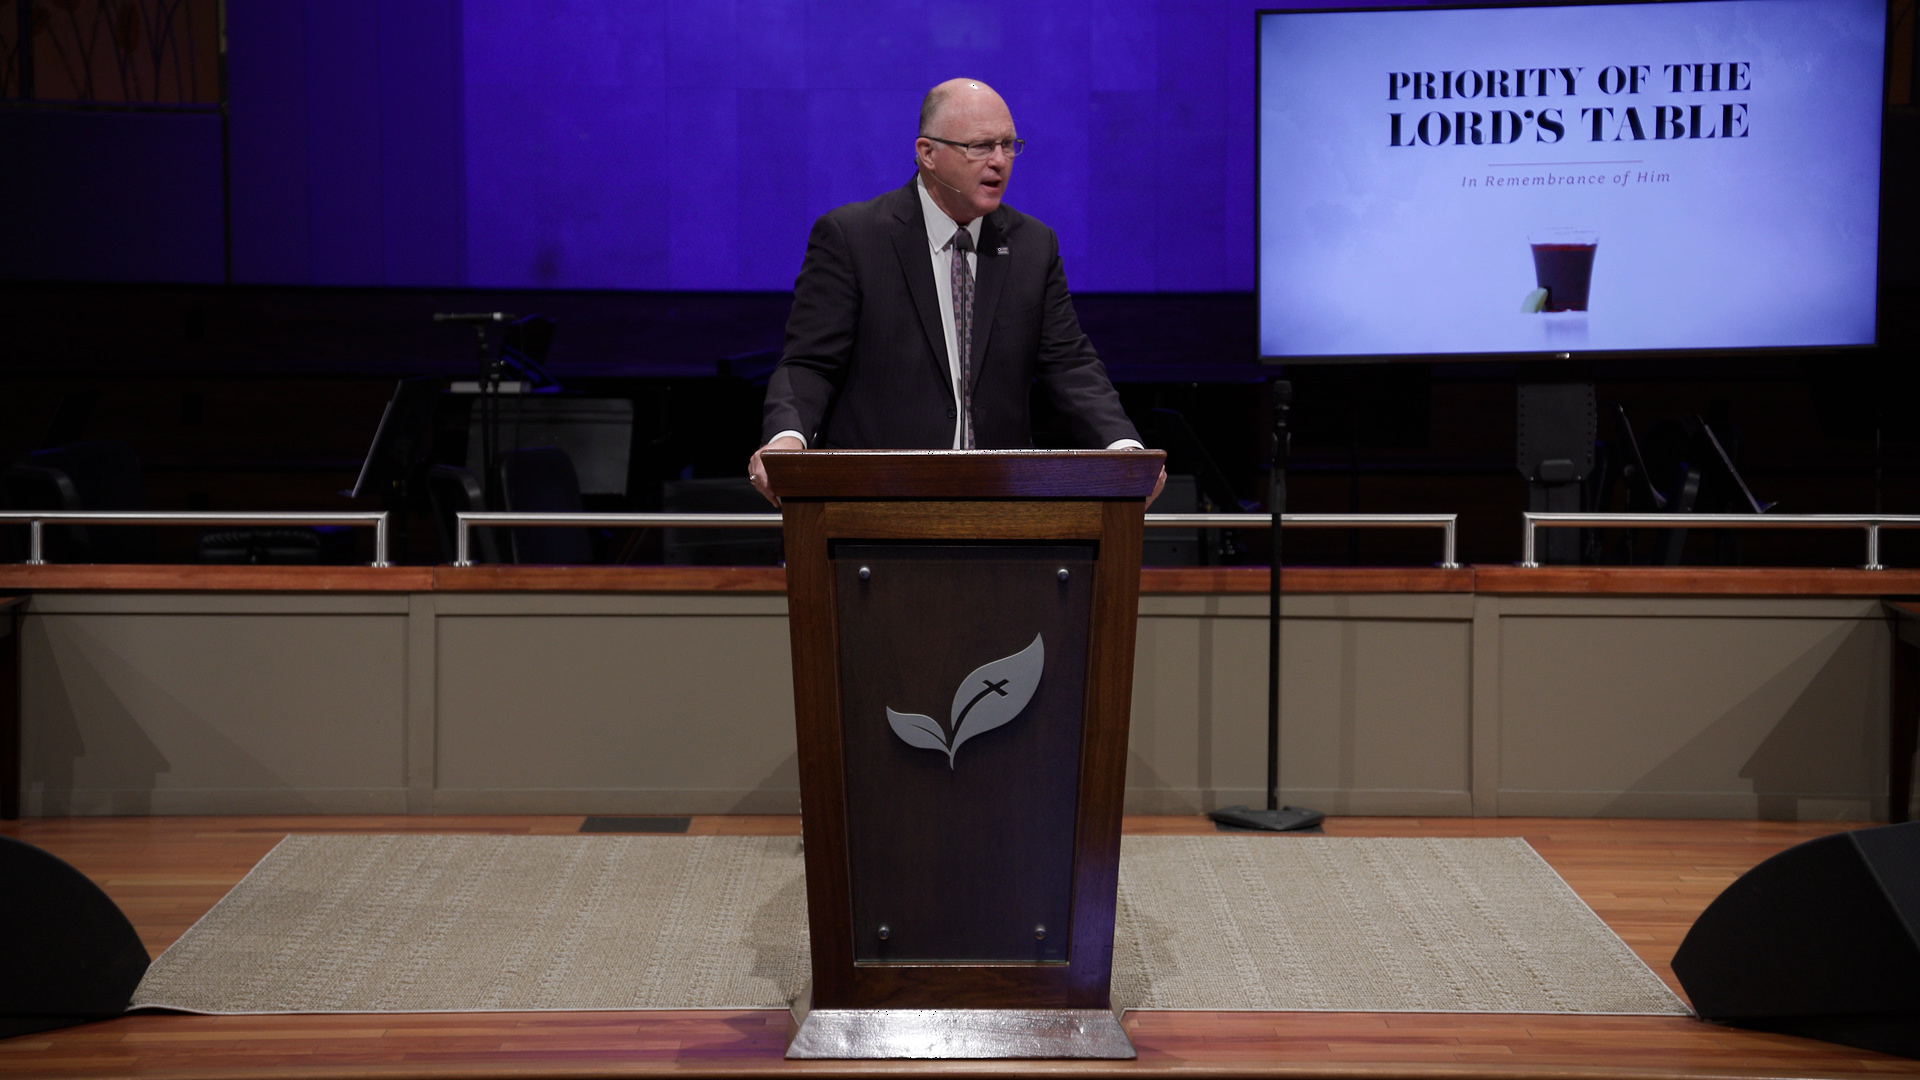 Pastor Paul Chappell: The Priority of the Lord's Table